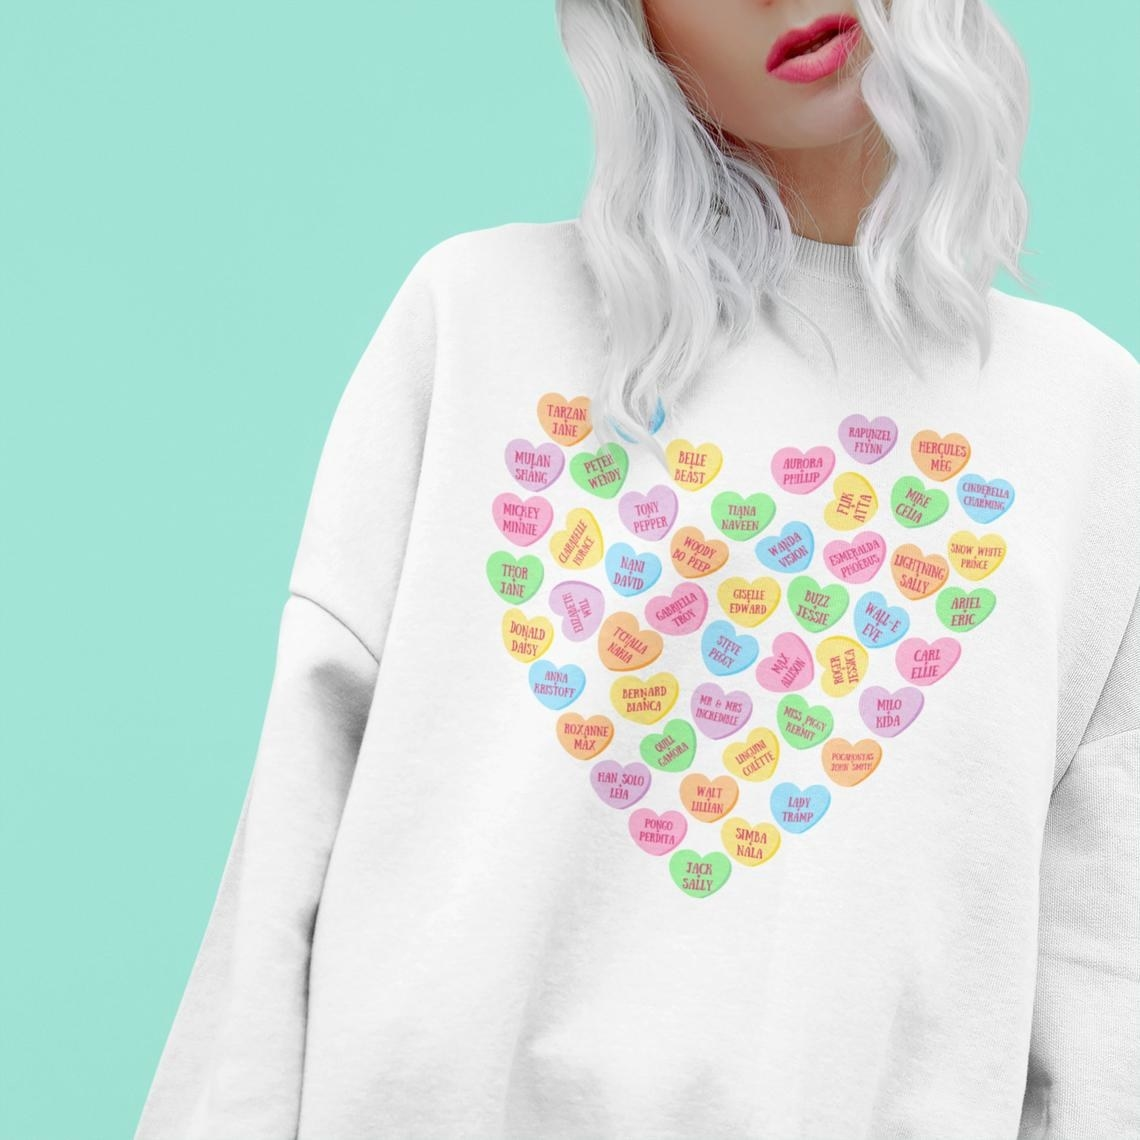 White sweatshirt with several candy hearts in the shape of a heart, each with the name of a different Disney couple